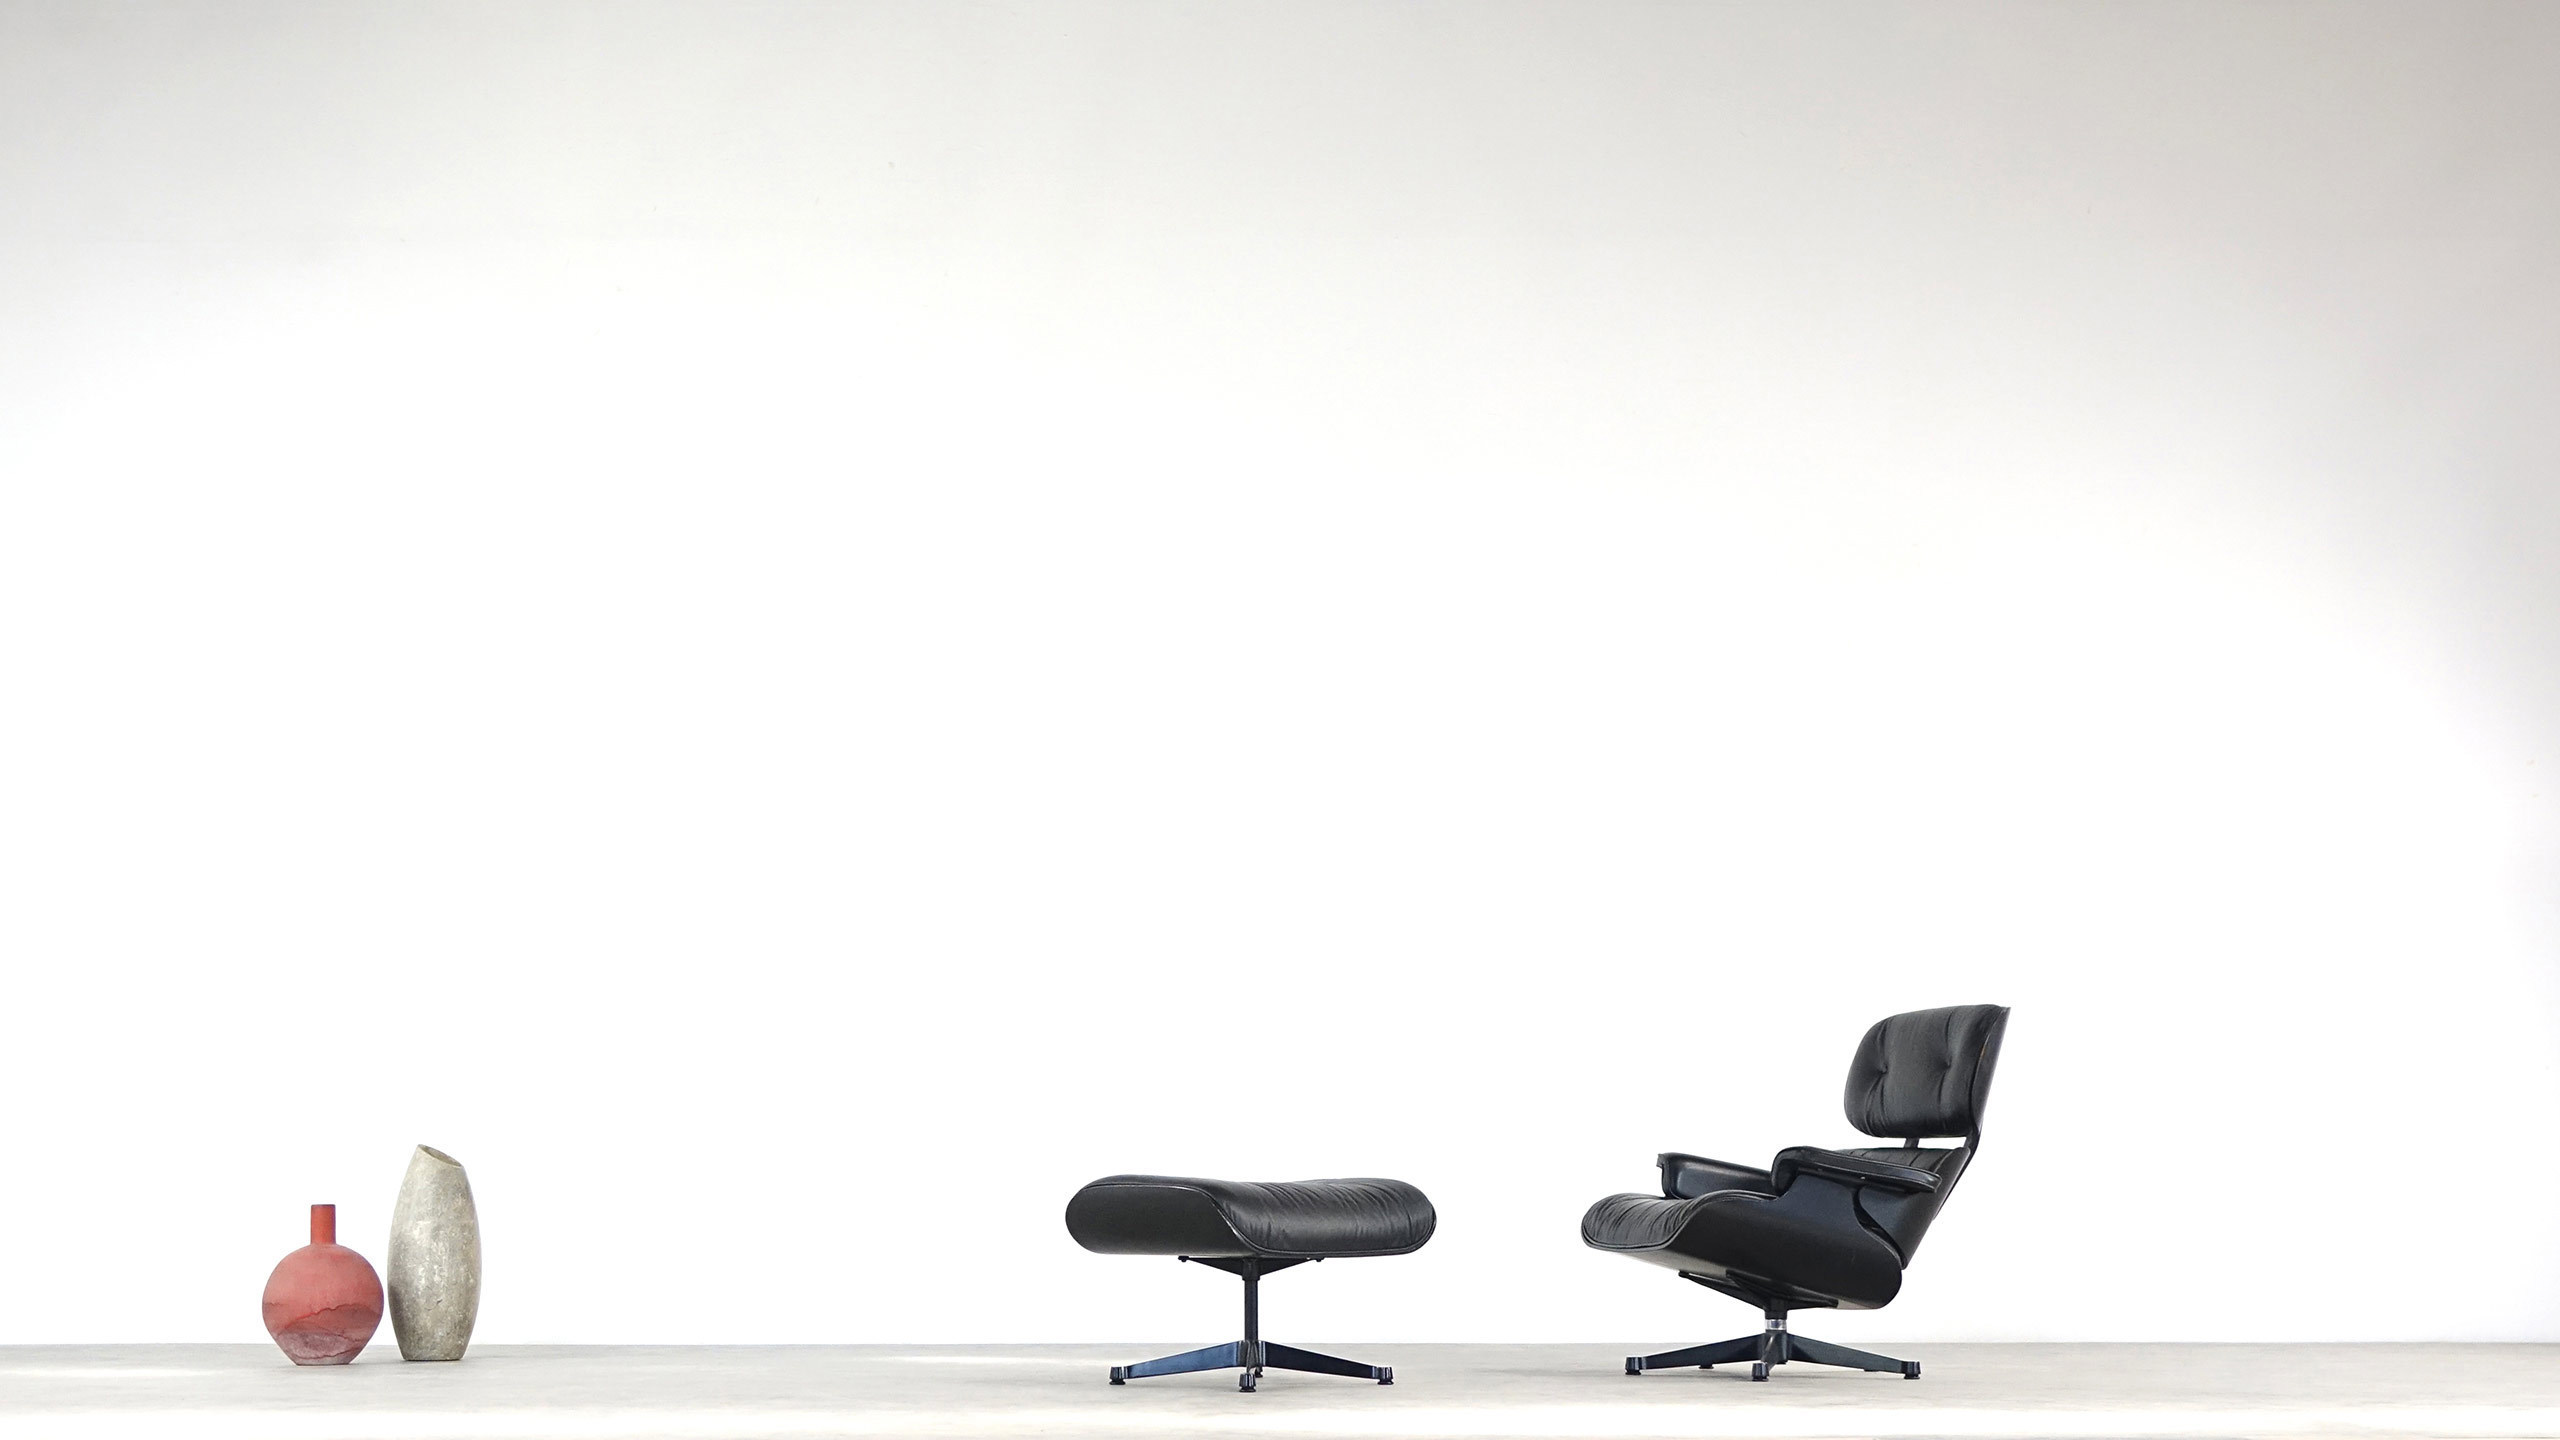 Charles Amp Ray Eames Herman Miller Lounge Chair Vitra